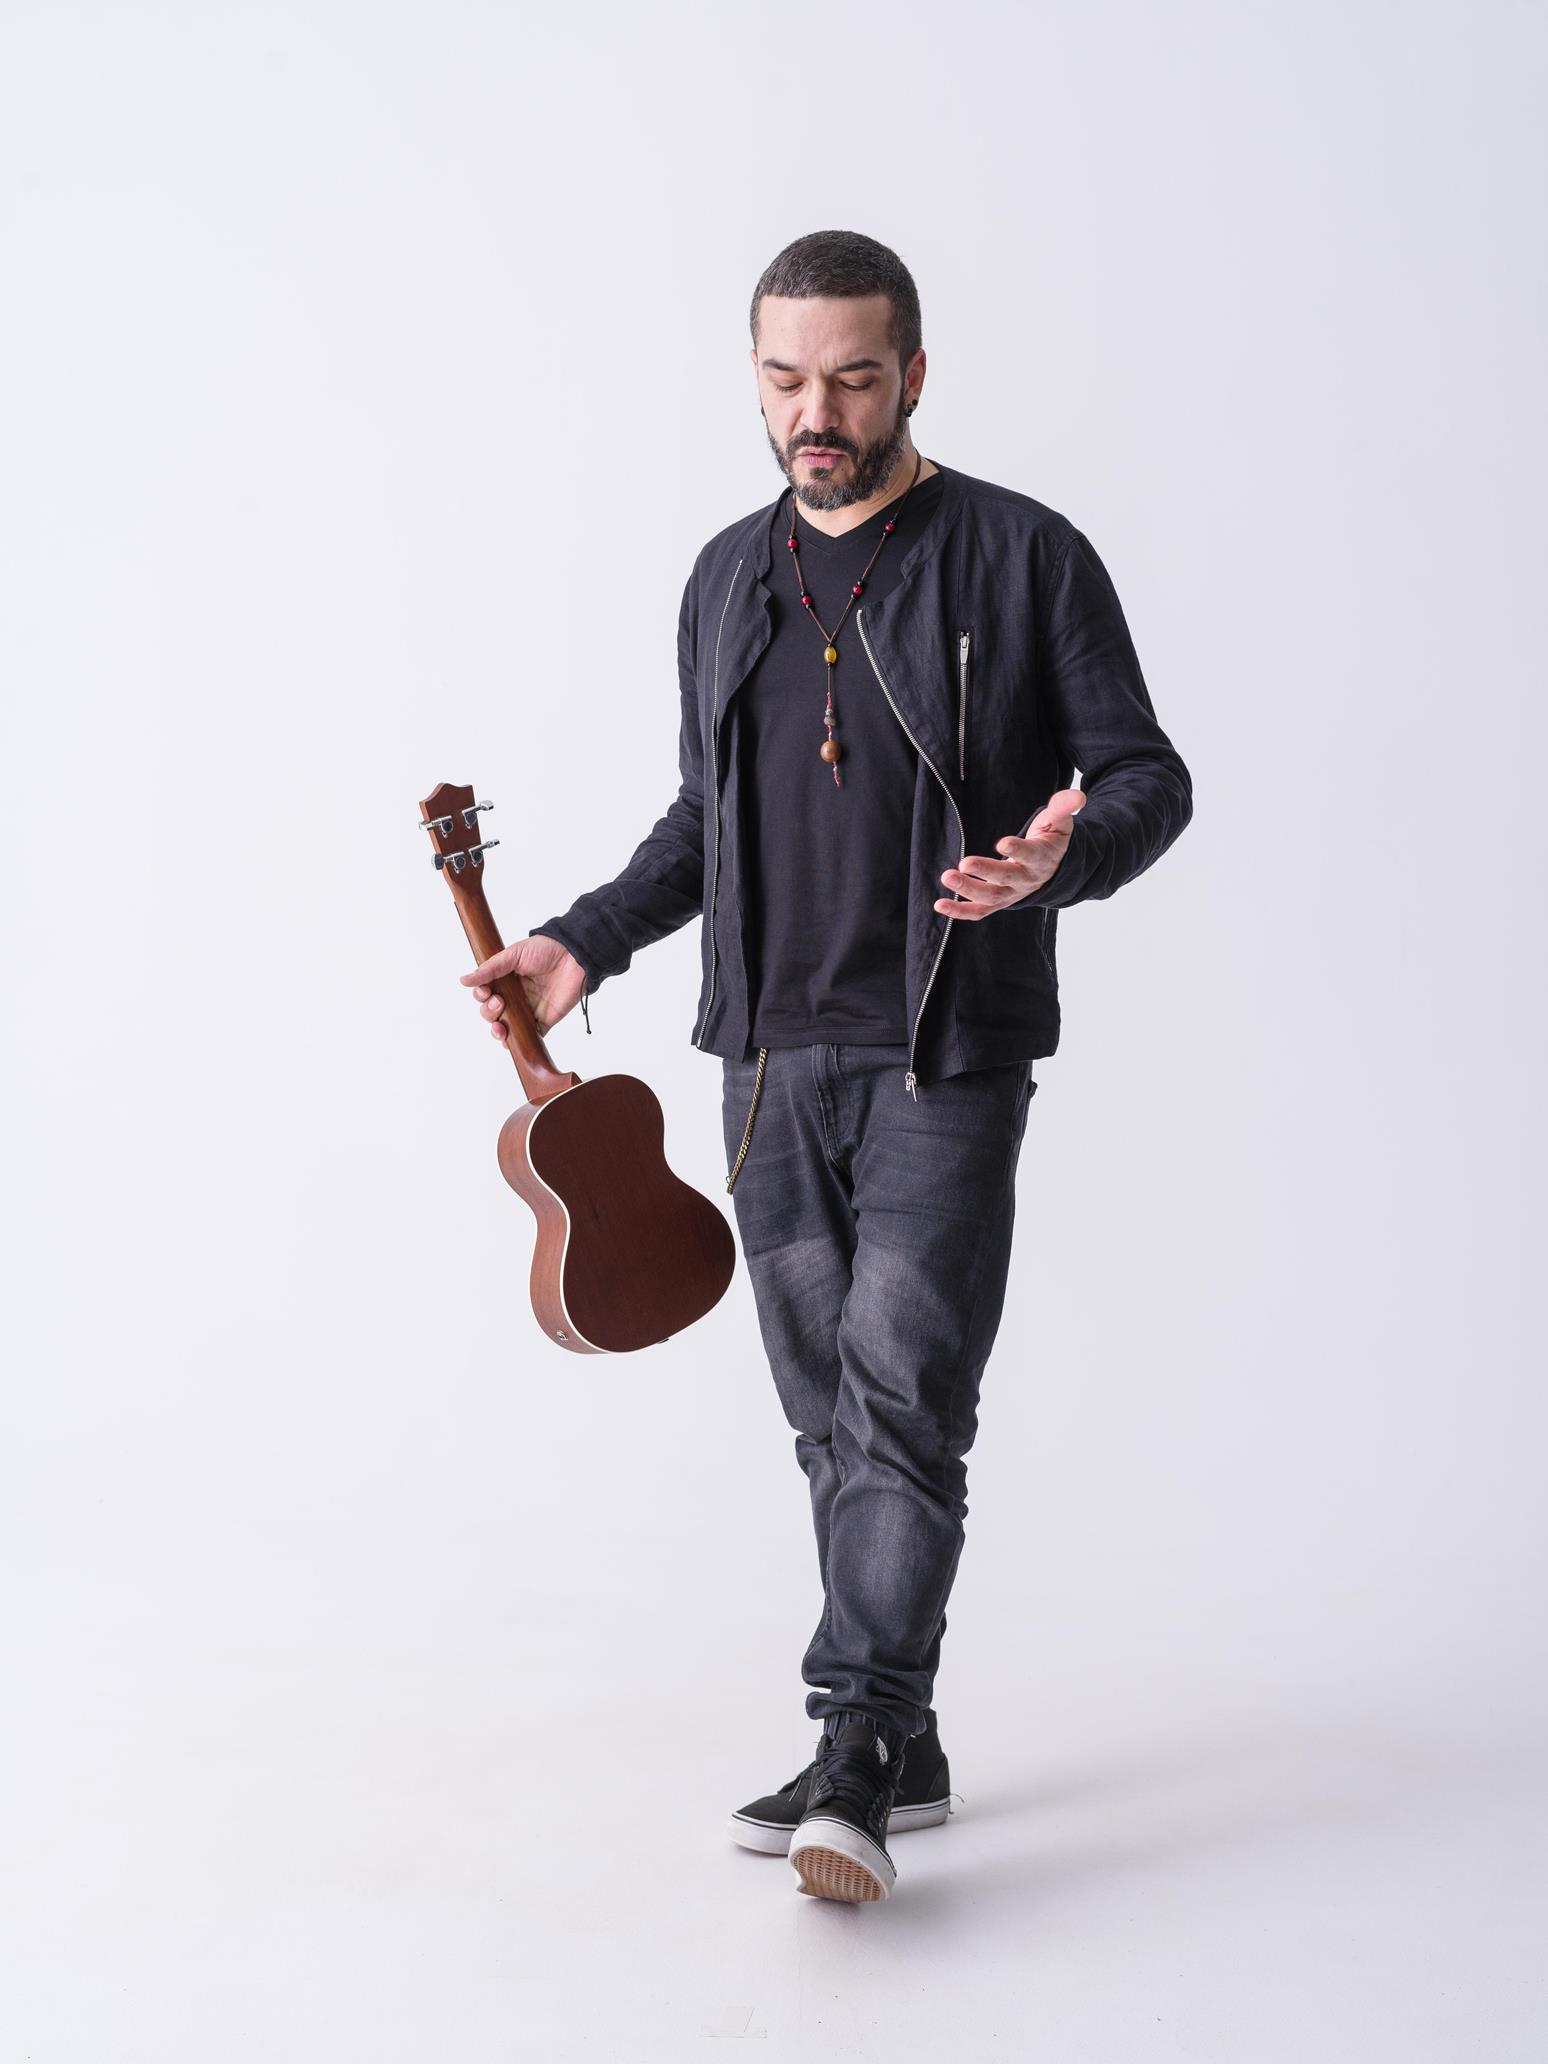 live acoustic adrian despot și concert dayday, la animusic night Live acoustic Adrian Despot și concert DayDay, la Animusic Night Despot